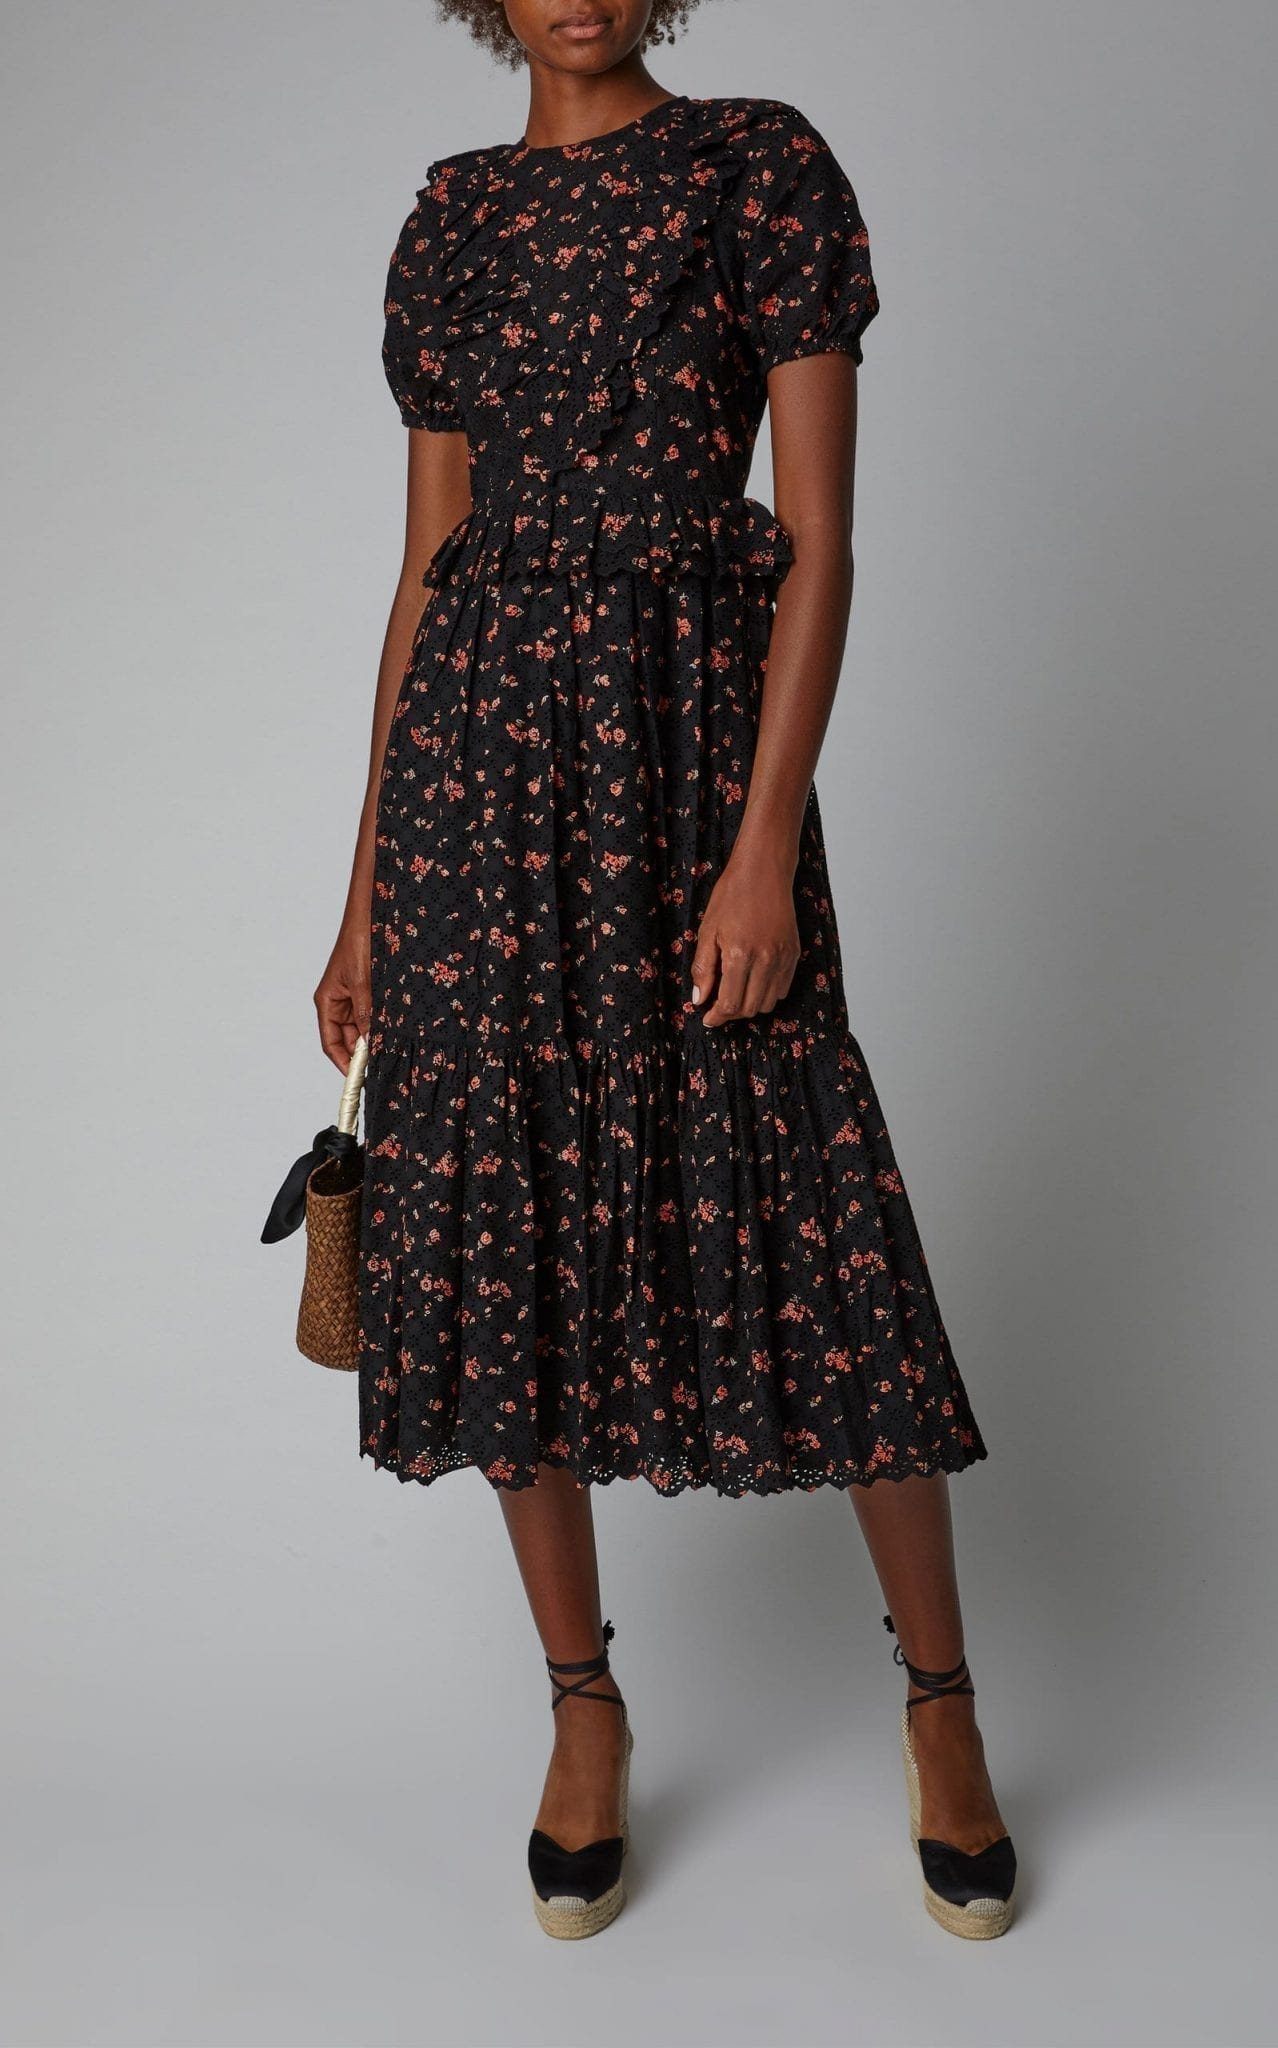 Ulla Johnson Bettine Fl Embroidered Broderie Anglaise Midi Black Dress